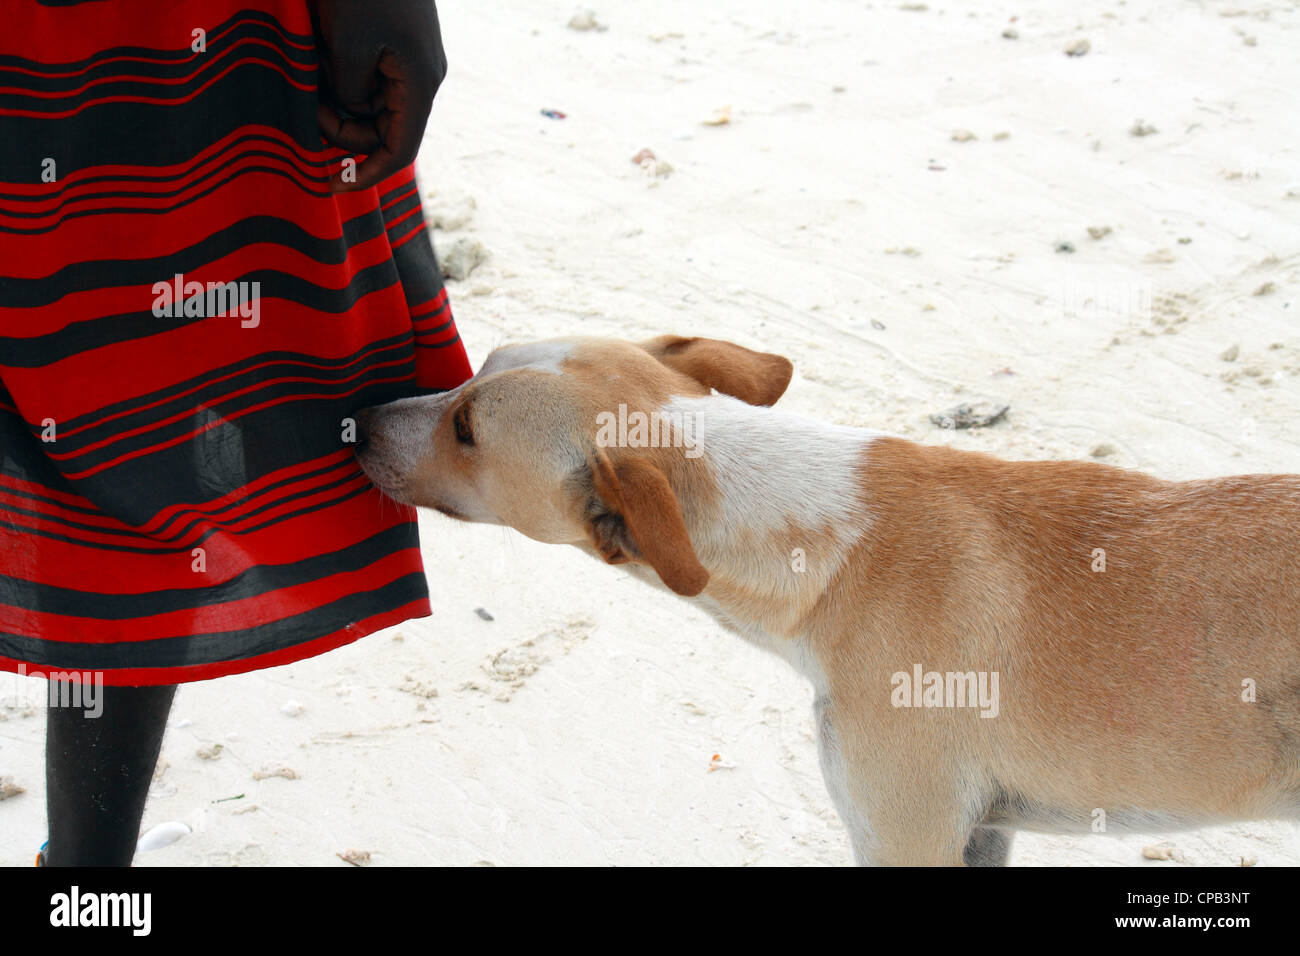 The dog is man's best friend - Stock Image